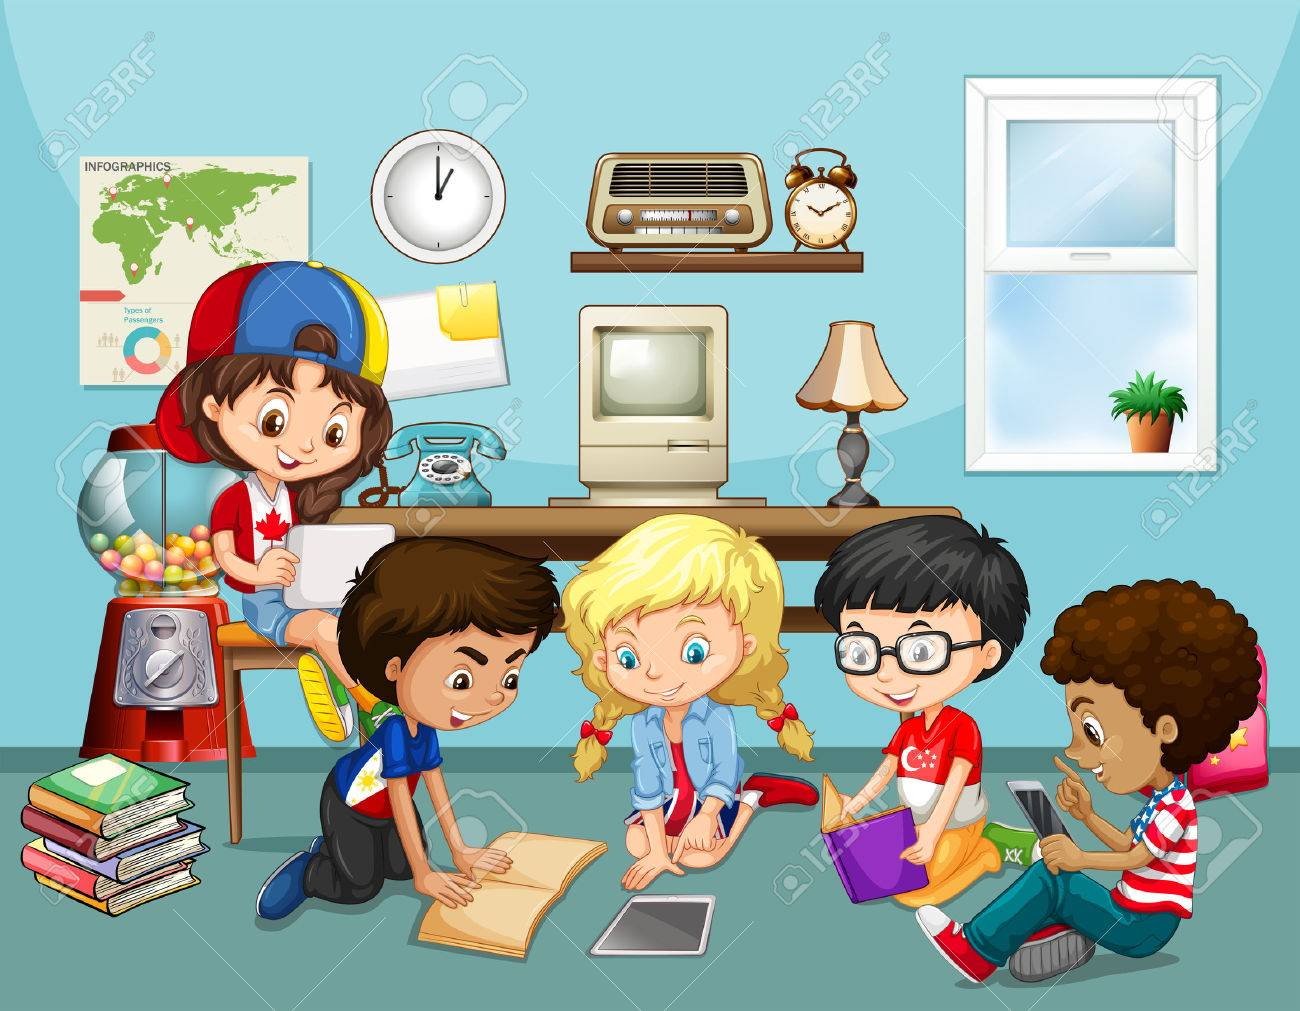 Many children working in classroom illustration.